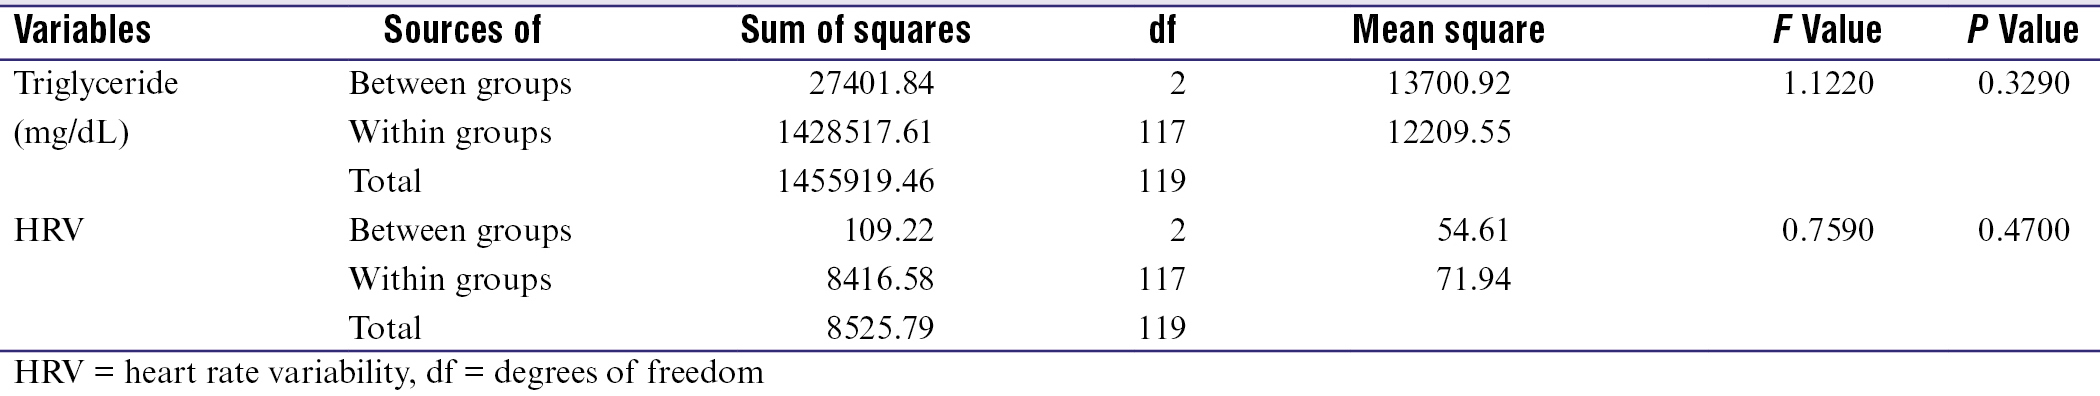 Table 3: Comparison of three groups with triglyceride levels and heart rate variability